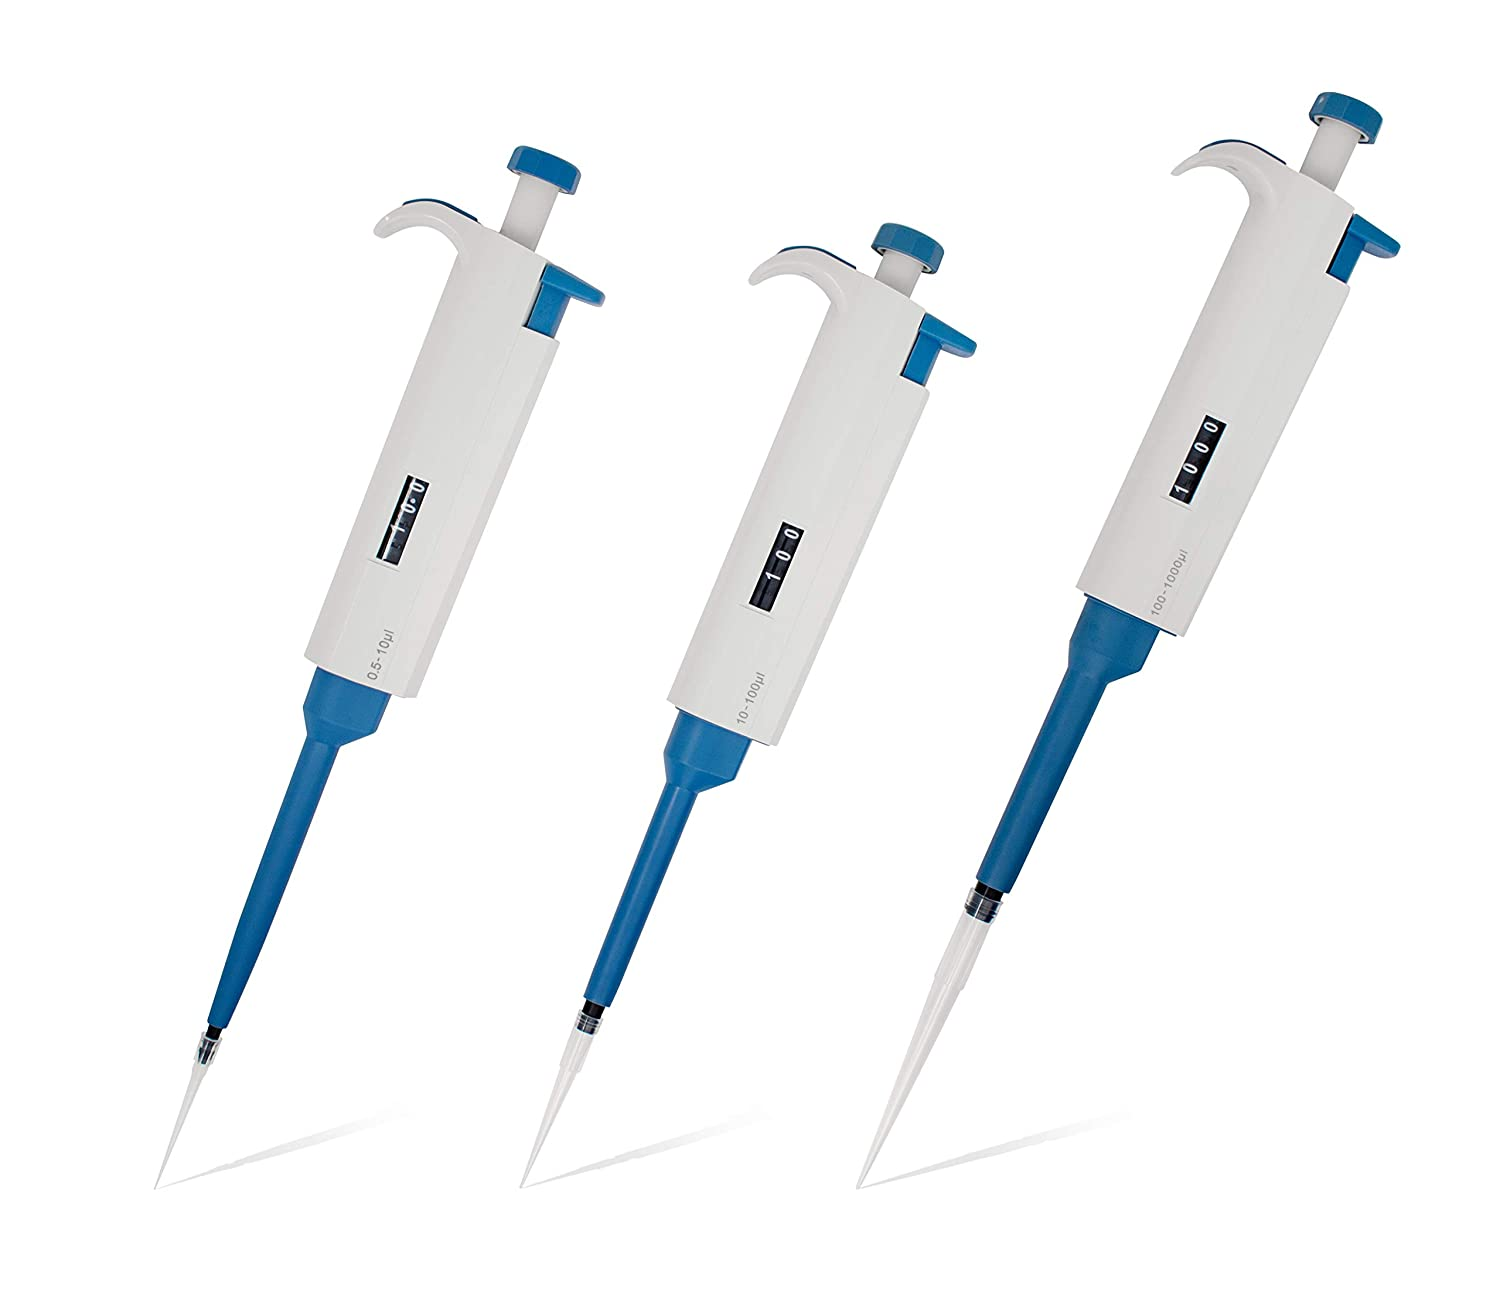 MicroPipette Kit: 3 TopPette Scientific Pipettors (0.5-10ul; 10-100ul; 100-1000ul), Adjustable Single Channel Multi-Volume Autoclavable Pipettes SH-CHEER